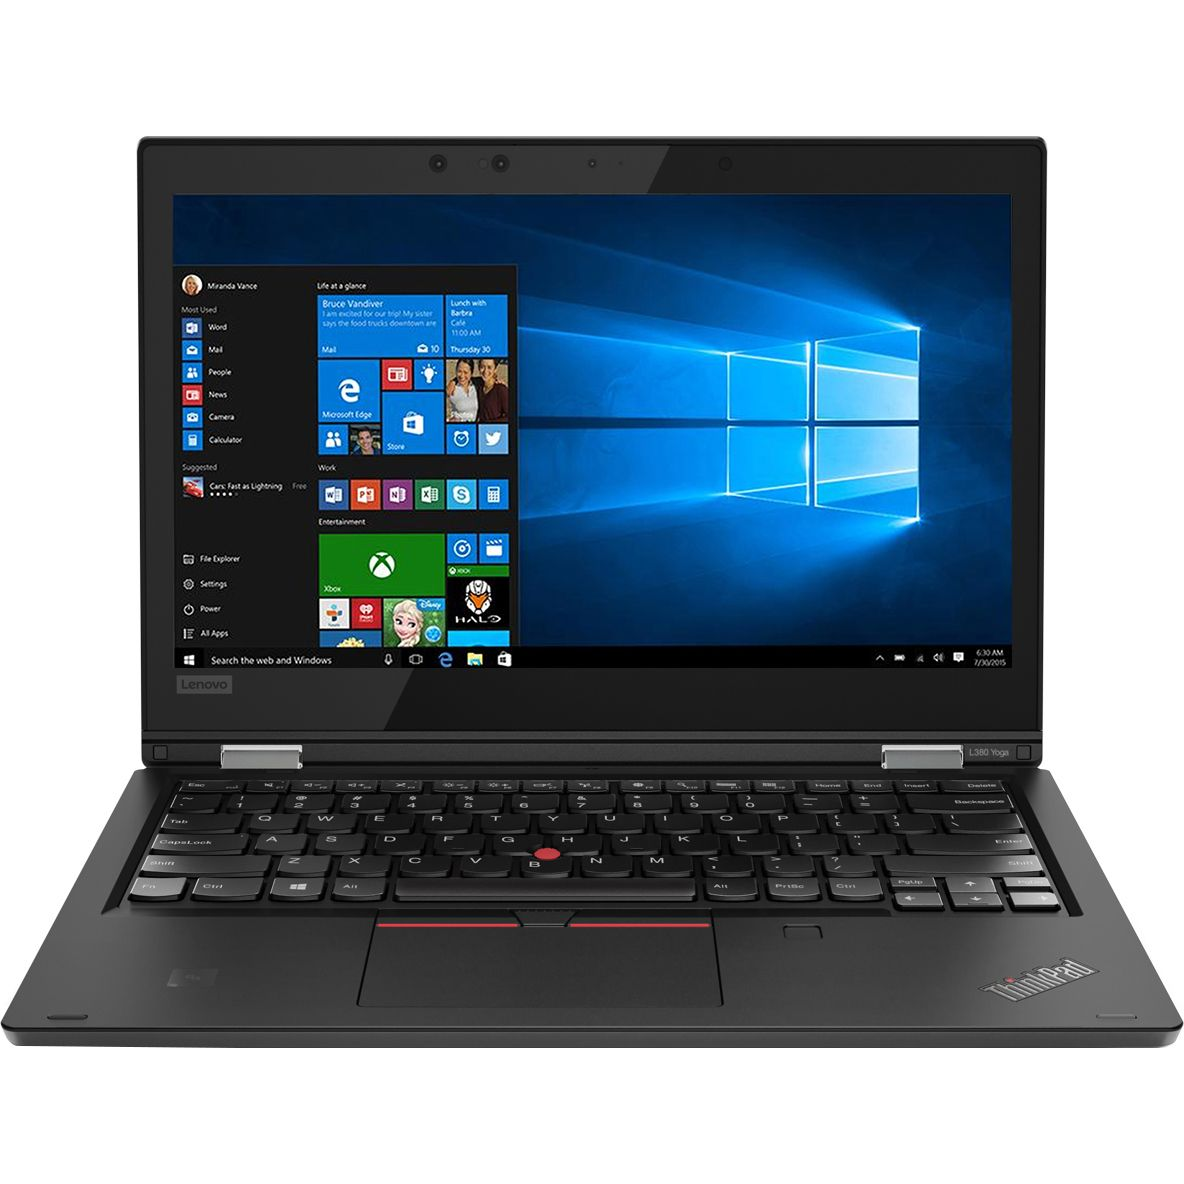 Ultrabook Lenovo ThinkPad L380 Yoga 13.3 Full HD Touch Intel Core i7-8550U RAM 8GB SSD 256GB Windows 10 Pro Negru